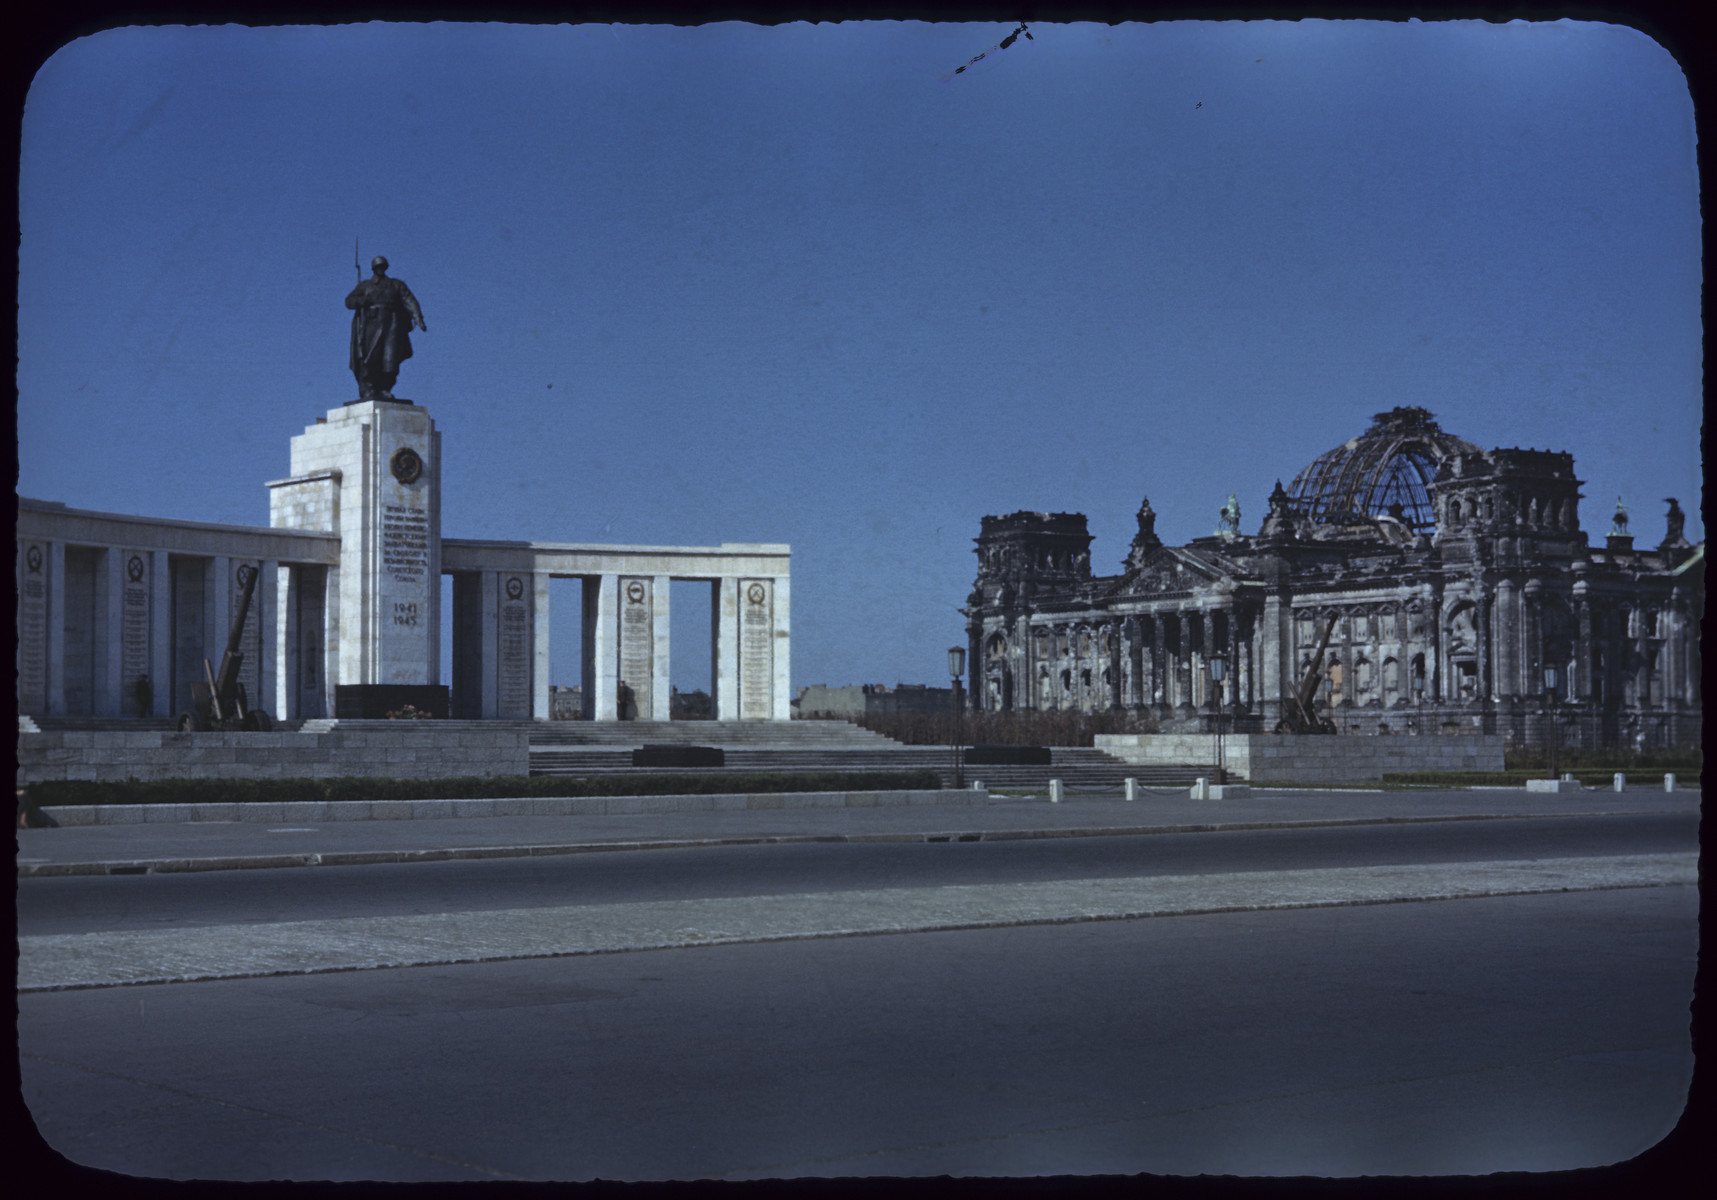 A view of the Soviet War Memorial and the destroyed Reichstag.